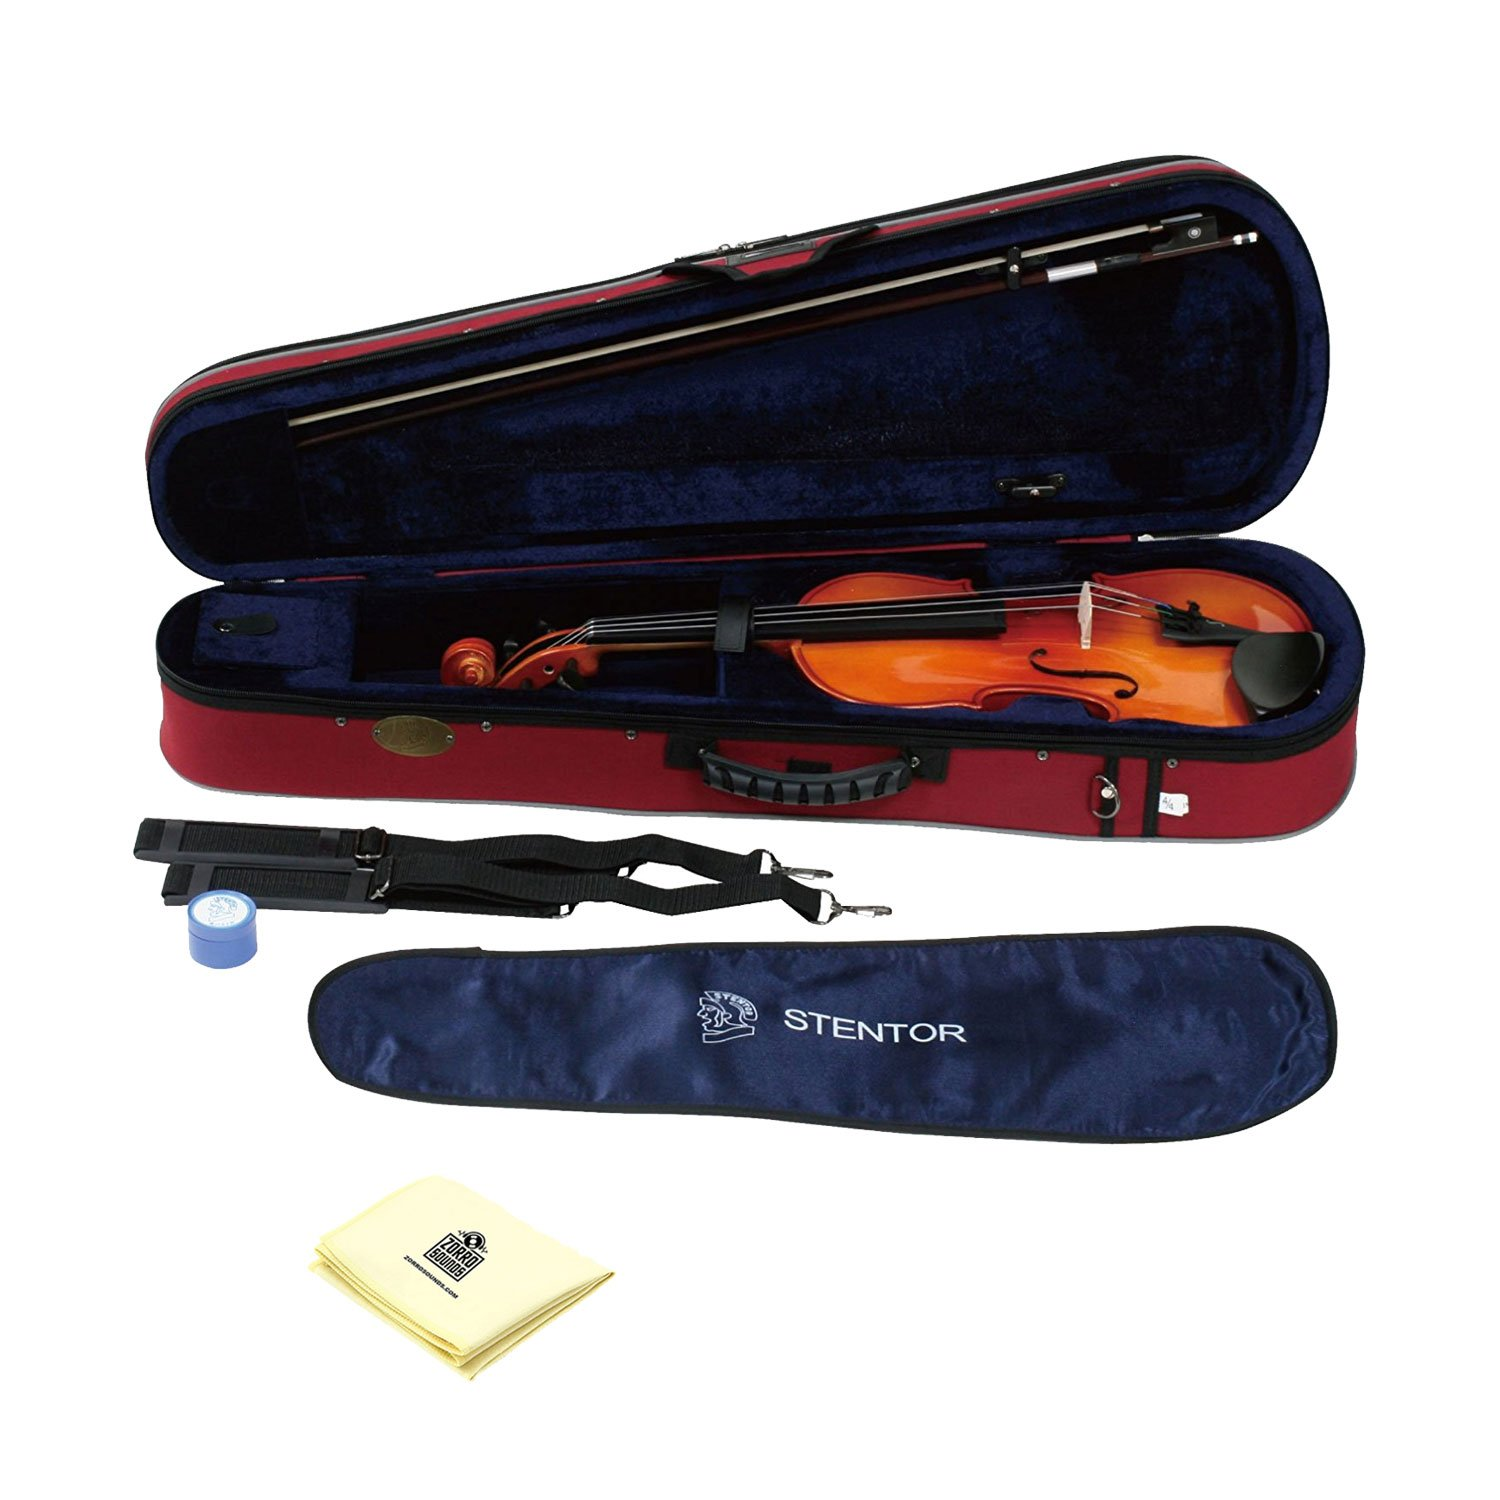 Stentor 1500-4/4 Violin Student II Outfit 4 String Violin (Made from quality tonewoods) Hand Crafted with Fine Grained Solid Spruce Top with Zorro Sounds Violin Polishing Cloth - stentor violin 4/4 by Stentor